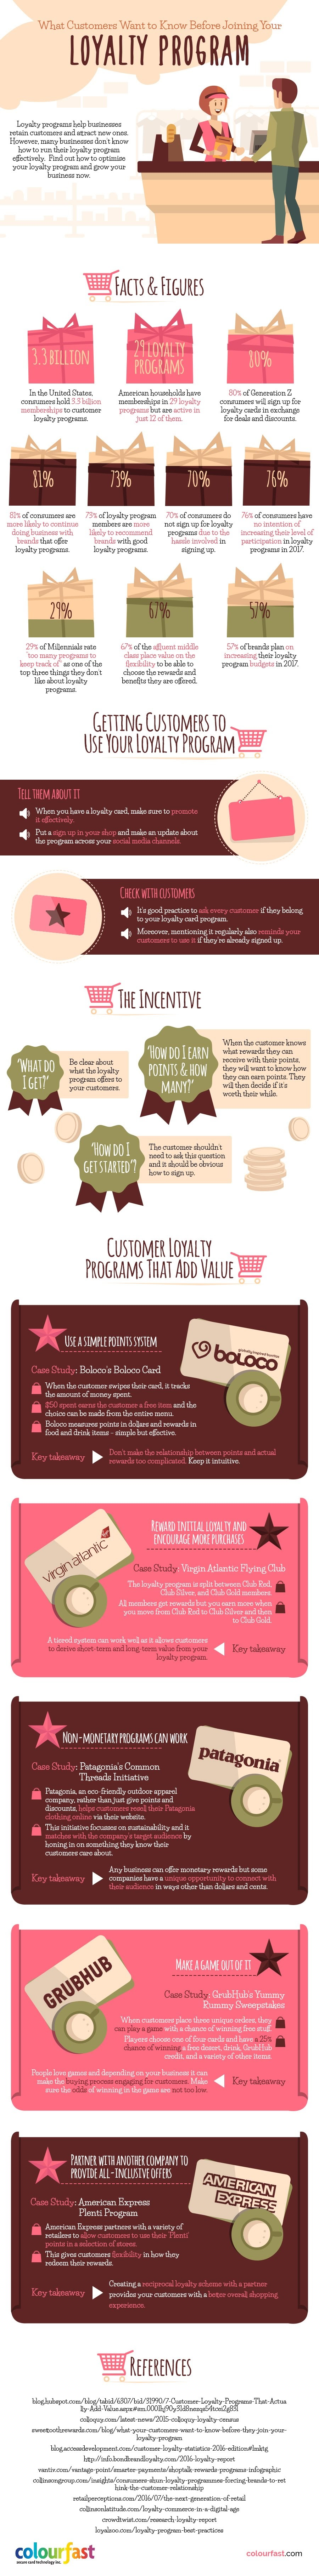 What Customers Want To Know Before Joining Your Loyalty Program